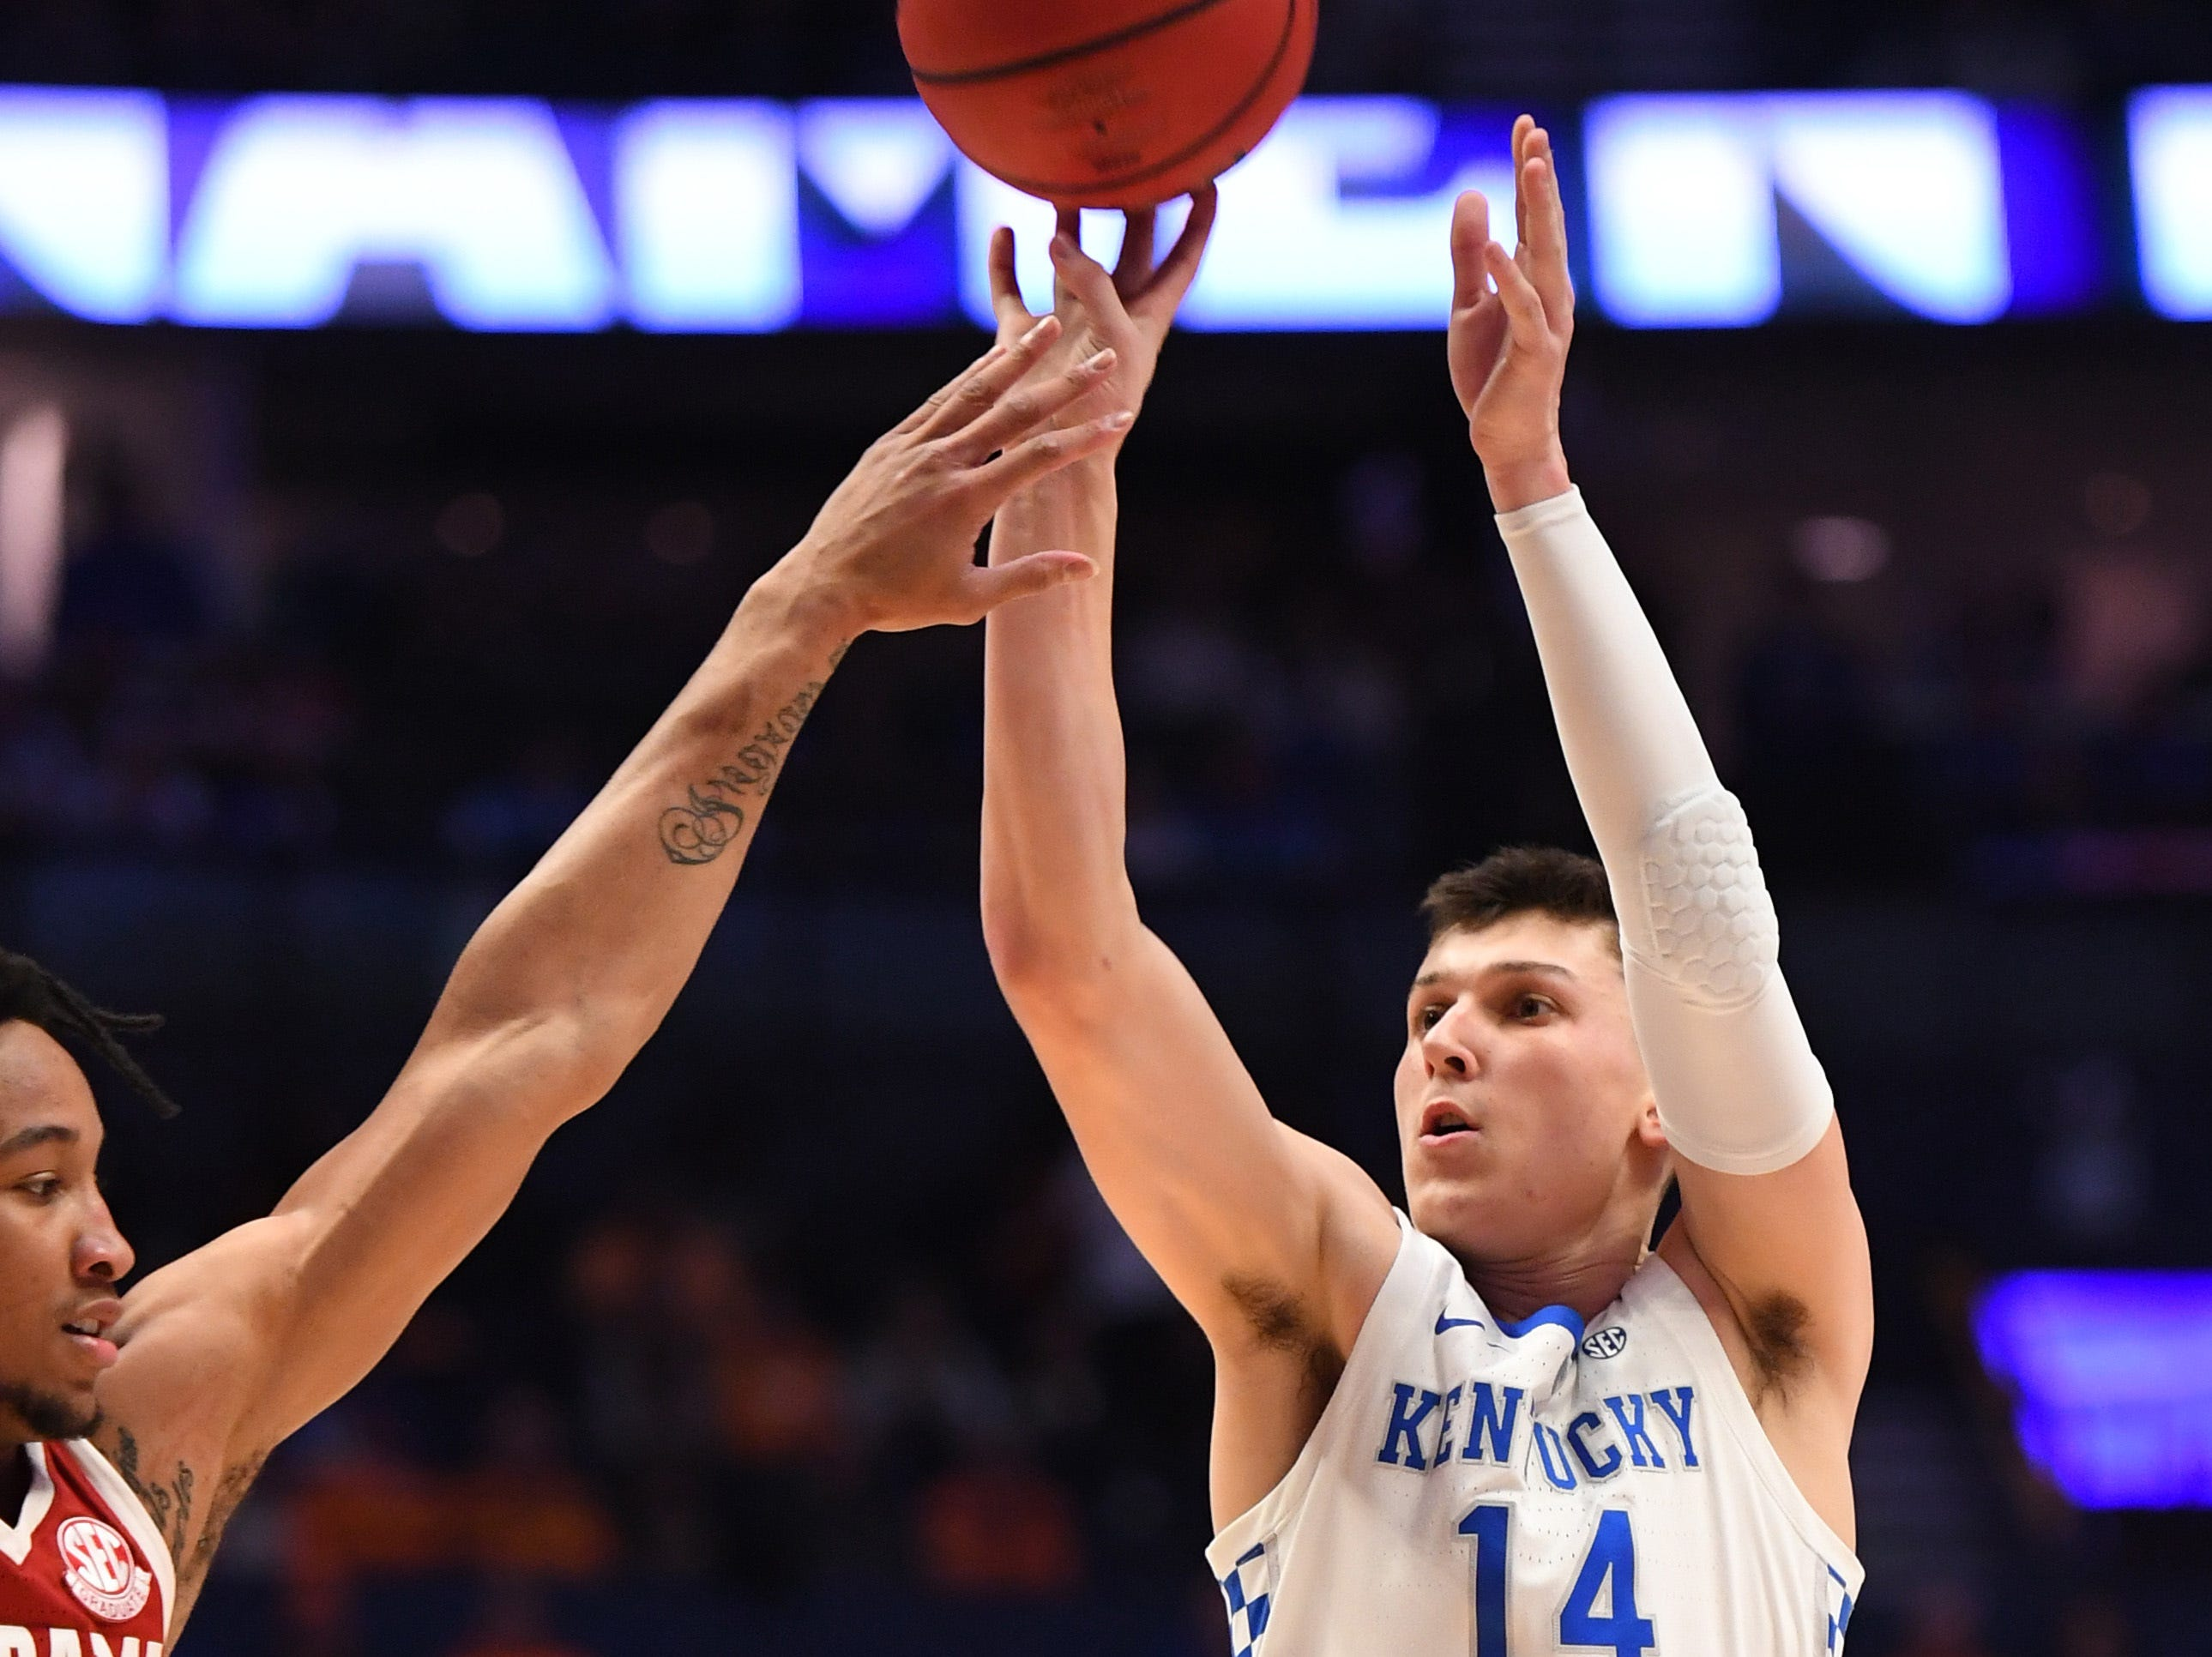 Mar 15, 2019; Nashville, TN, USA; Kentucky Wildcats guard Tyler Herro (14) scores a three point basket during the first half against the Alabama Crimson Tide in the SEC conference tournament at Bridgestone Arena. Mandatory Credit: Christopher Hanewinckel-USA TODAY Sports